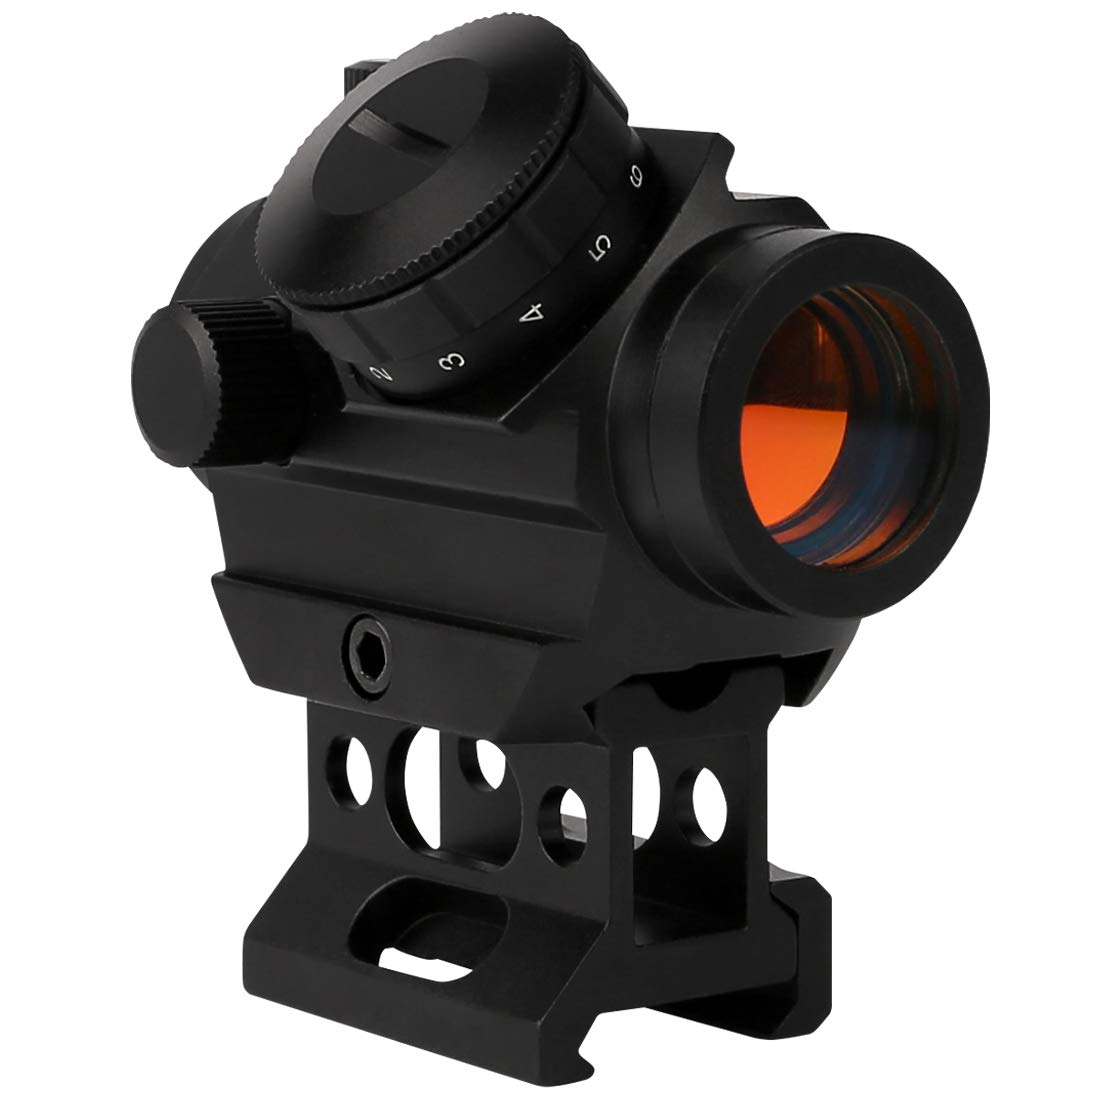 RETTBERG Reflex Red Green Dot Sight – Adjustable Reticle (4 Styles)11mm or